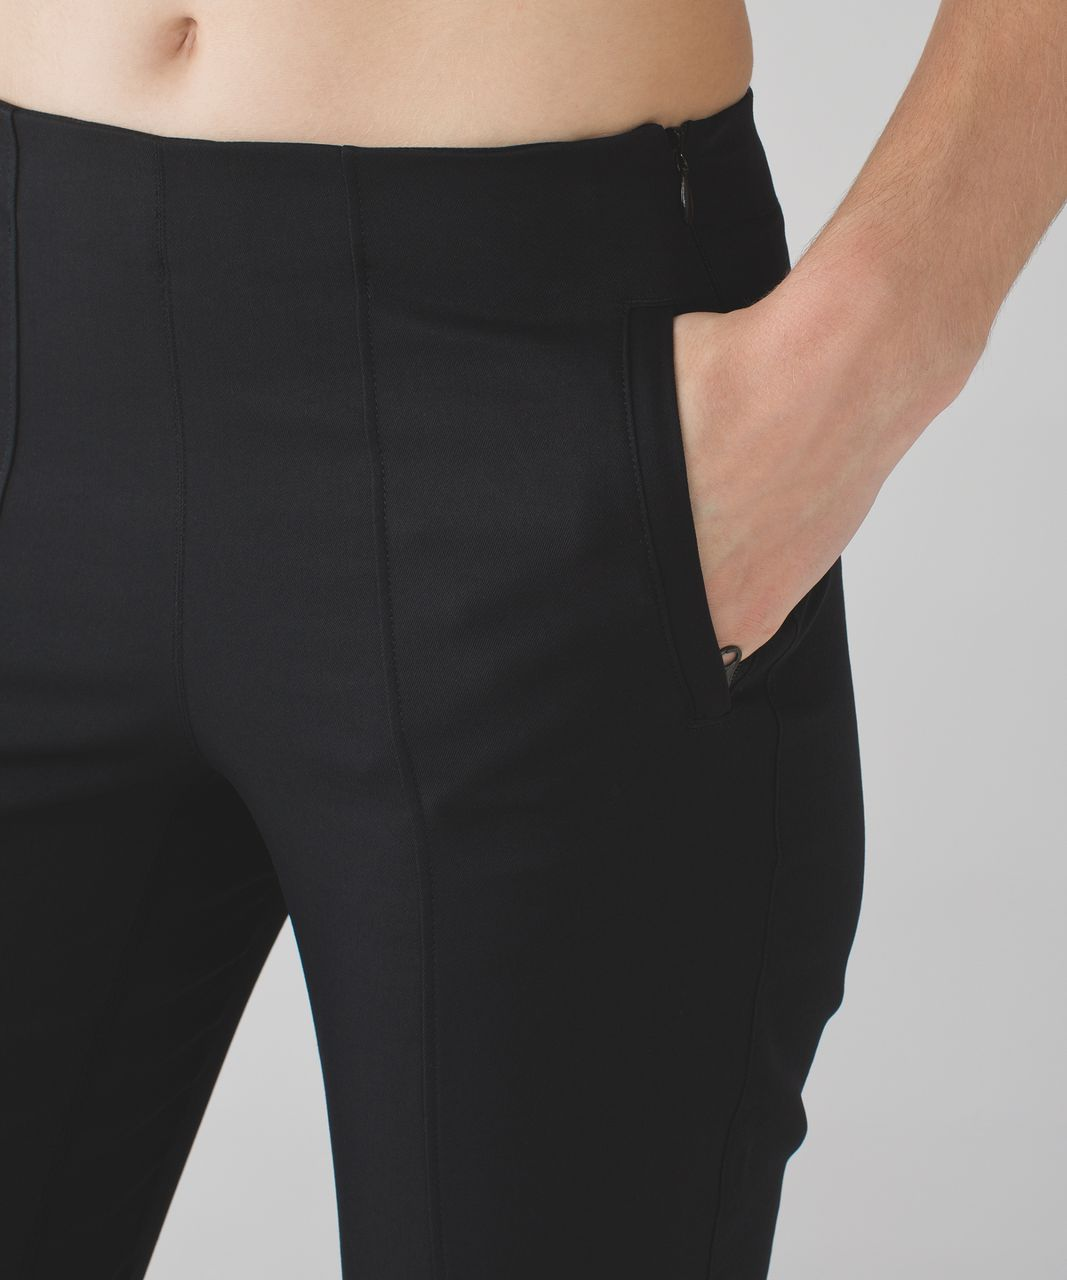 Lululemon &go Take-Off Flare (Regular) - Black